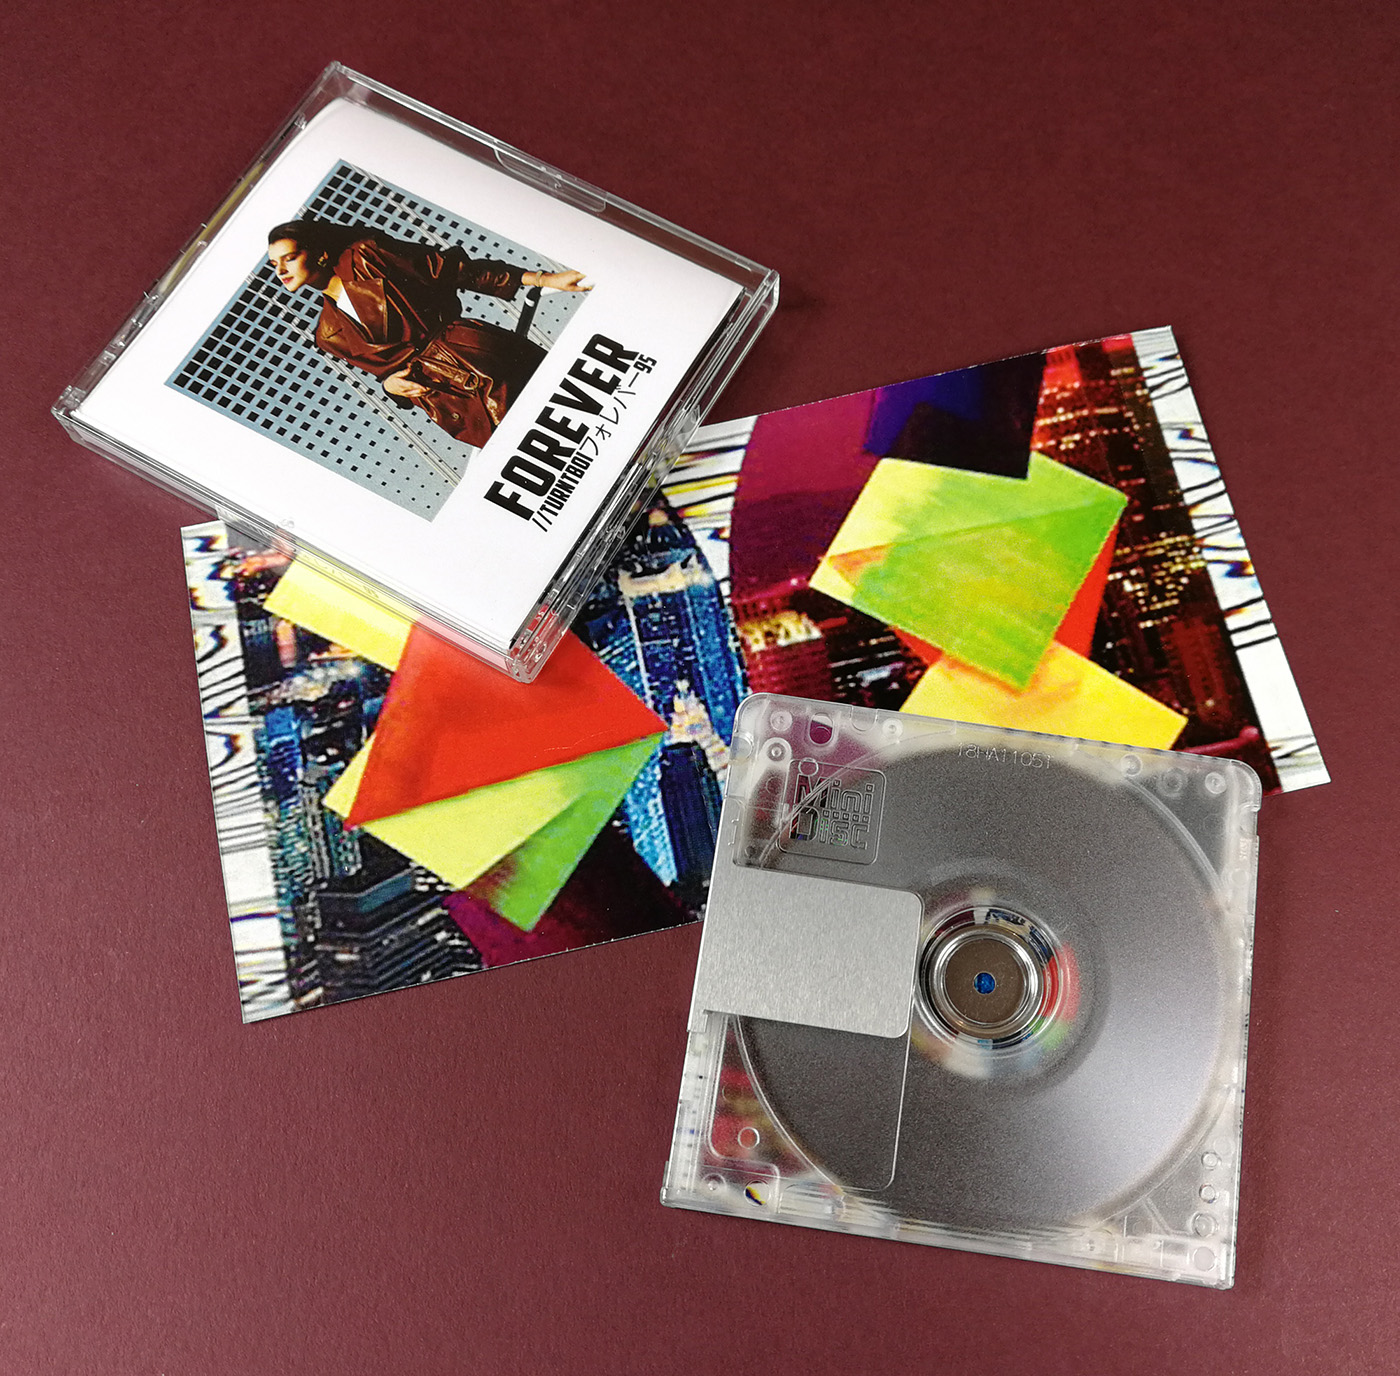 Clear MiniDiscs with jewel cases and full colour J-cards